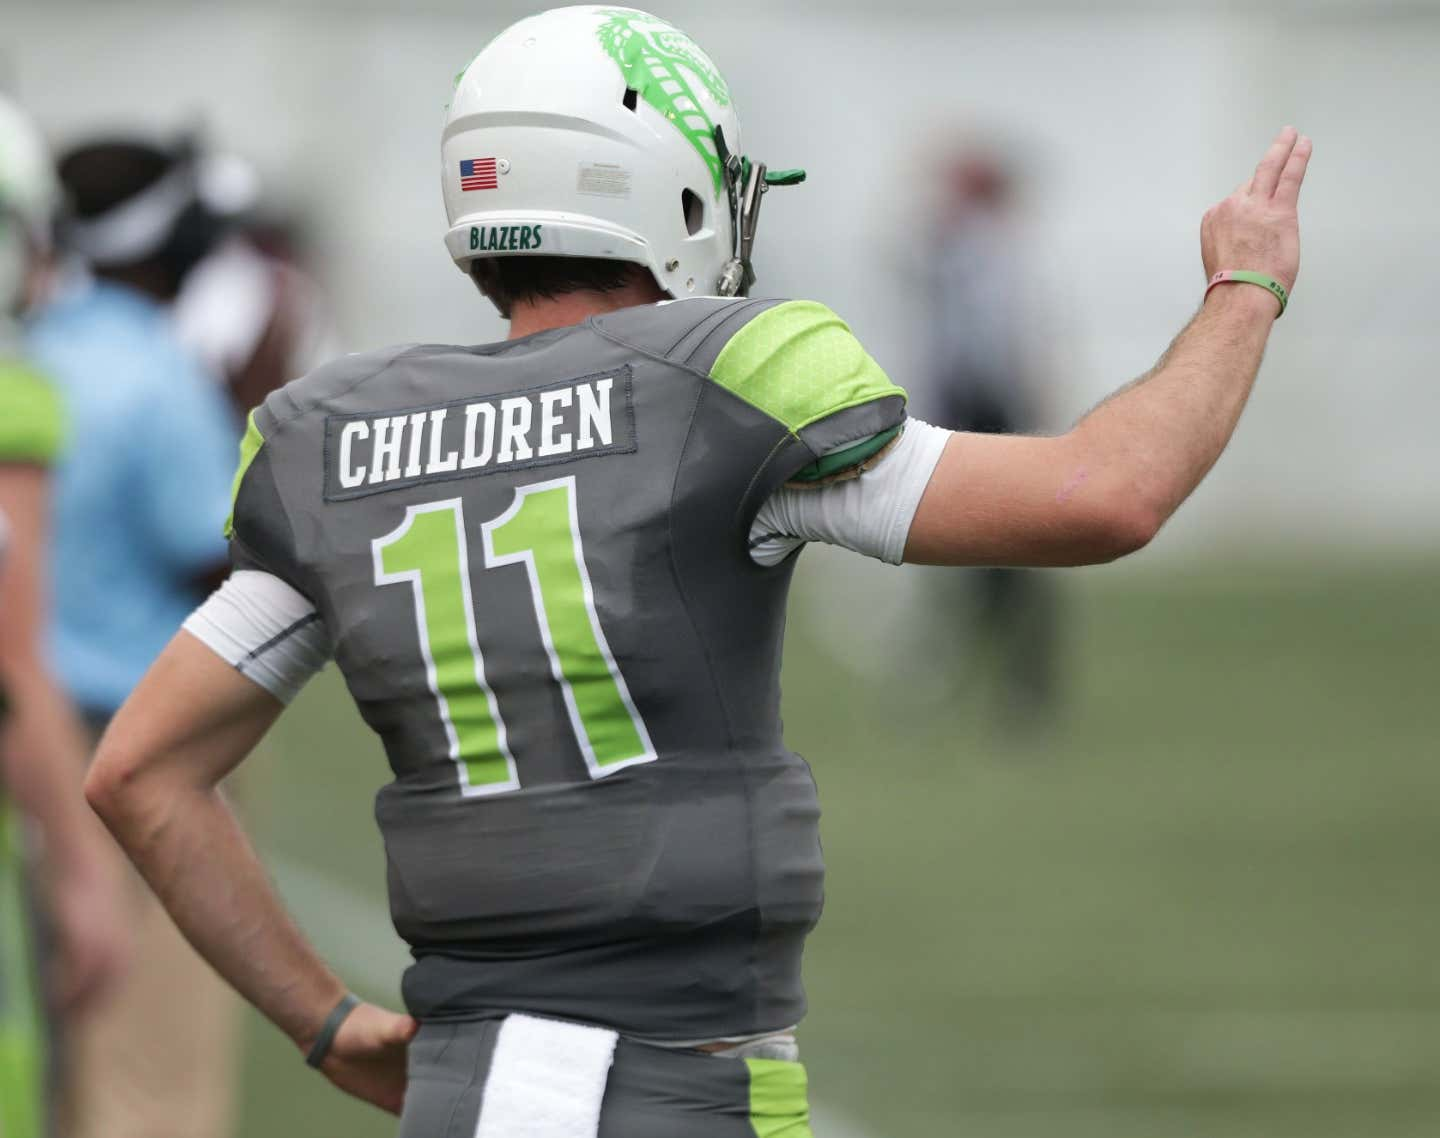 d489ad94a AWESOME  UAB To Wear Children Hospital Patients Names On Jerseys This  Weekend